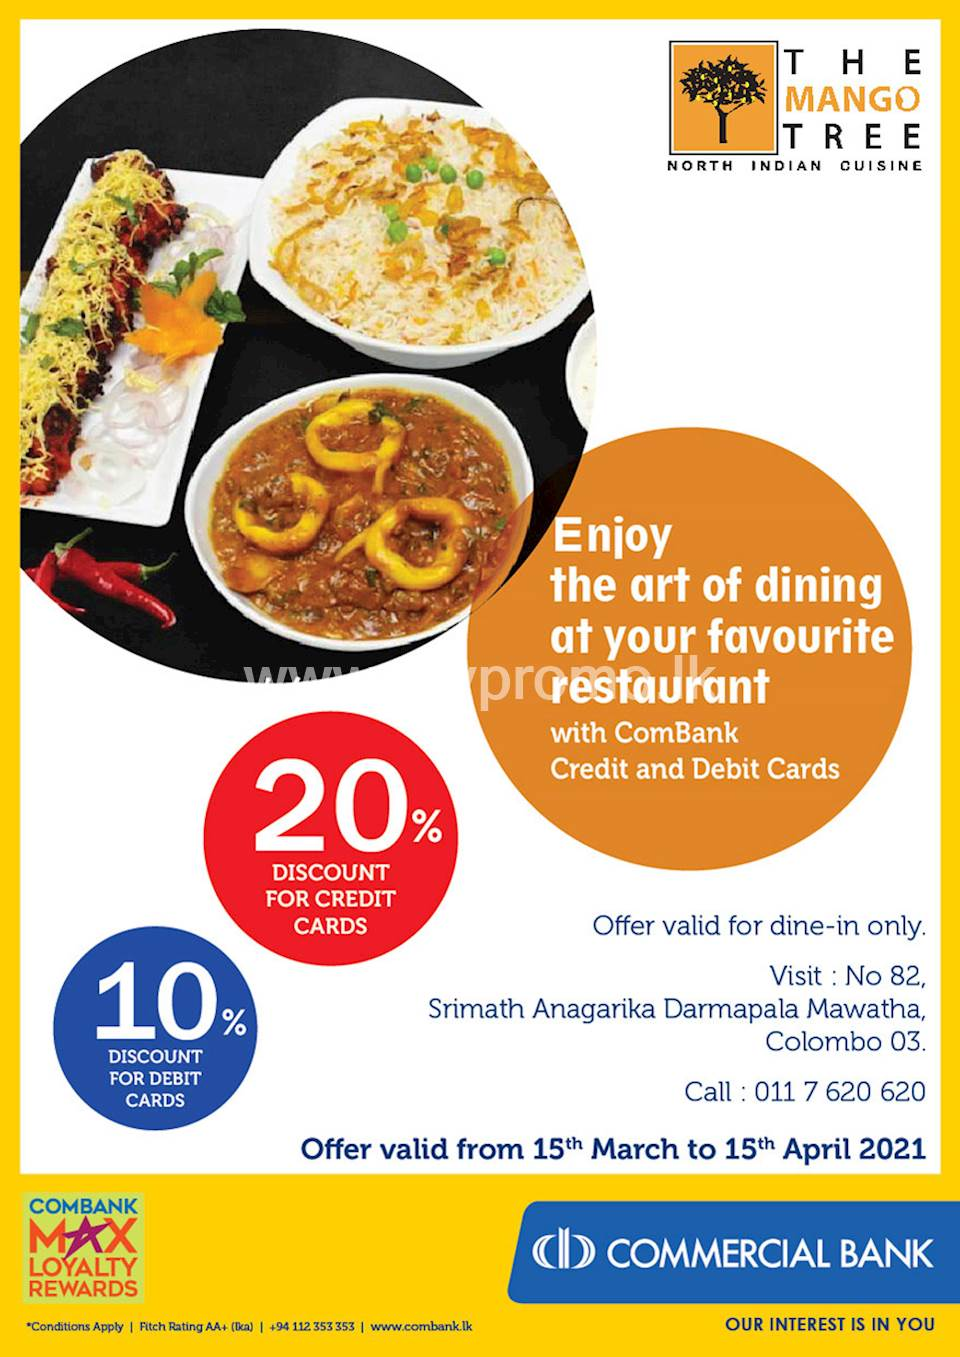 Enjoy up to 20% discount for ComBank Credit and Debit cards at The Mango Tree